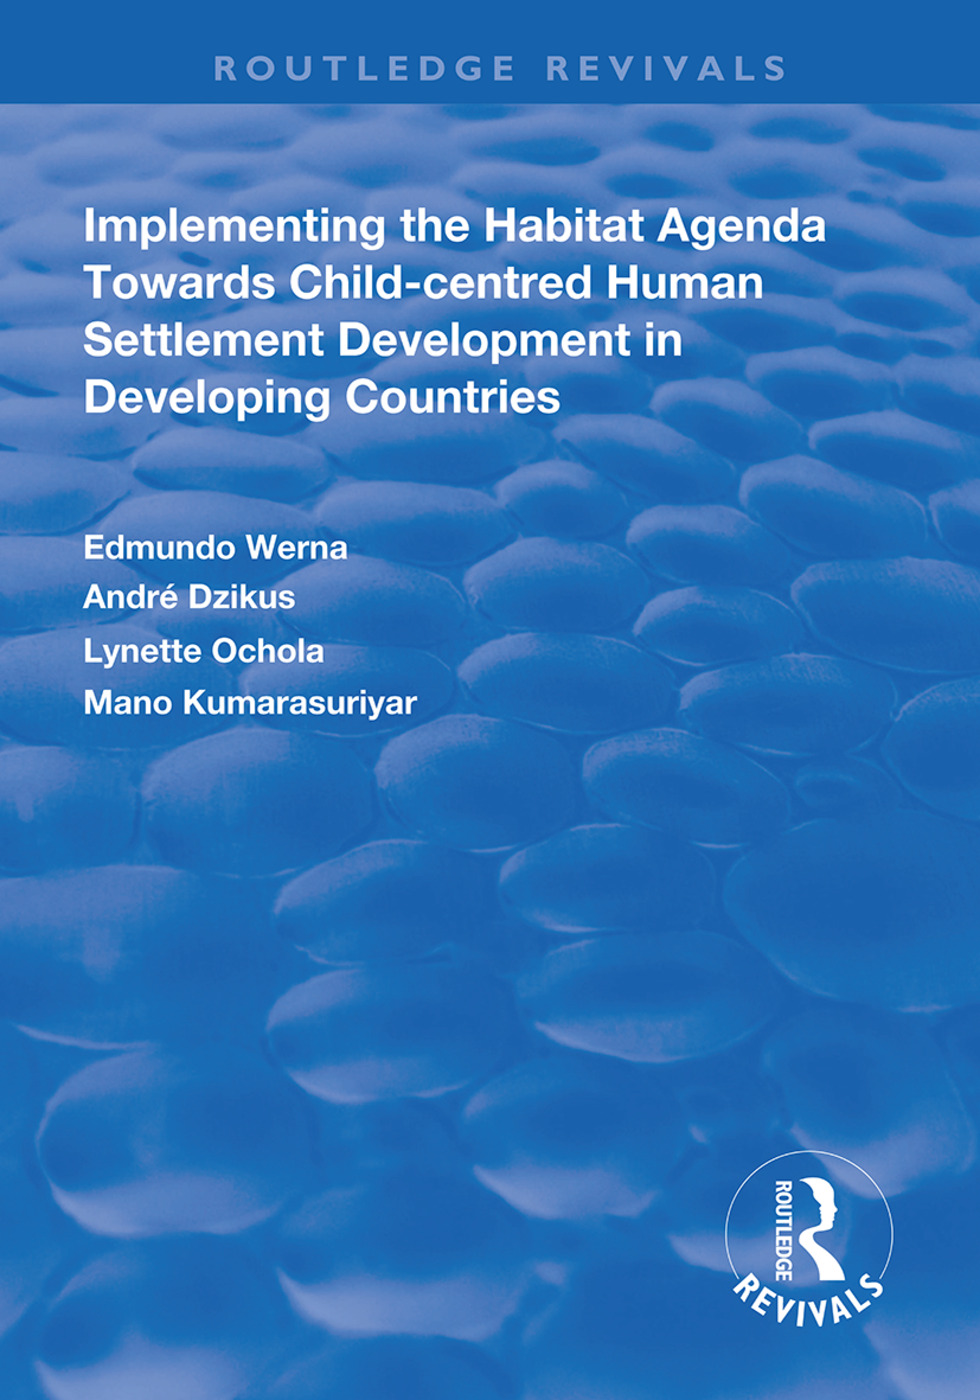 Implementing the Habit Agenda: Towards Child-centred Human Settlement Development in Developing Countries: Towards Child-centred Human Settlement Development in Developing Countries book cover